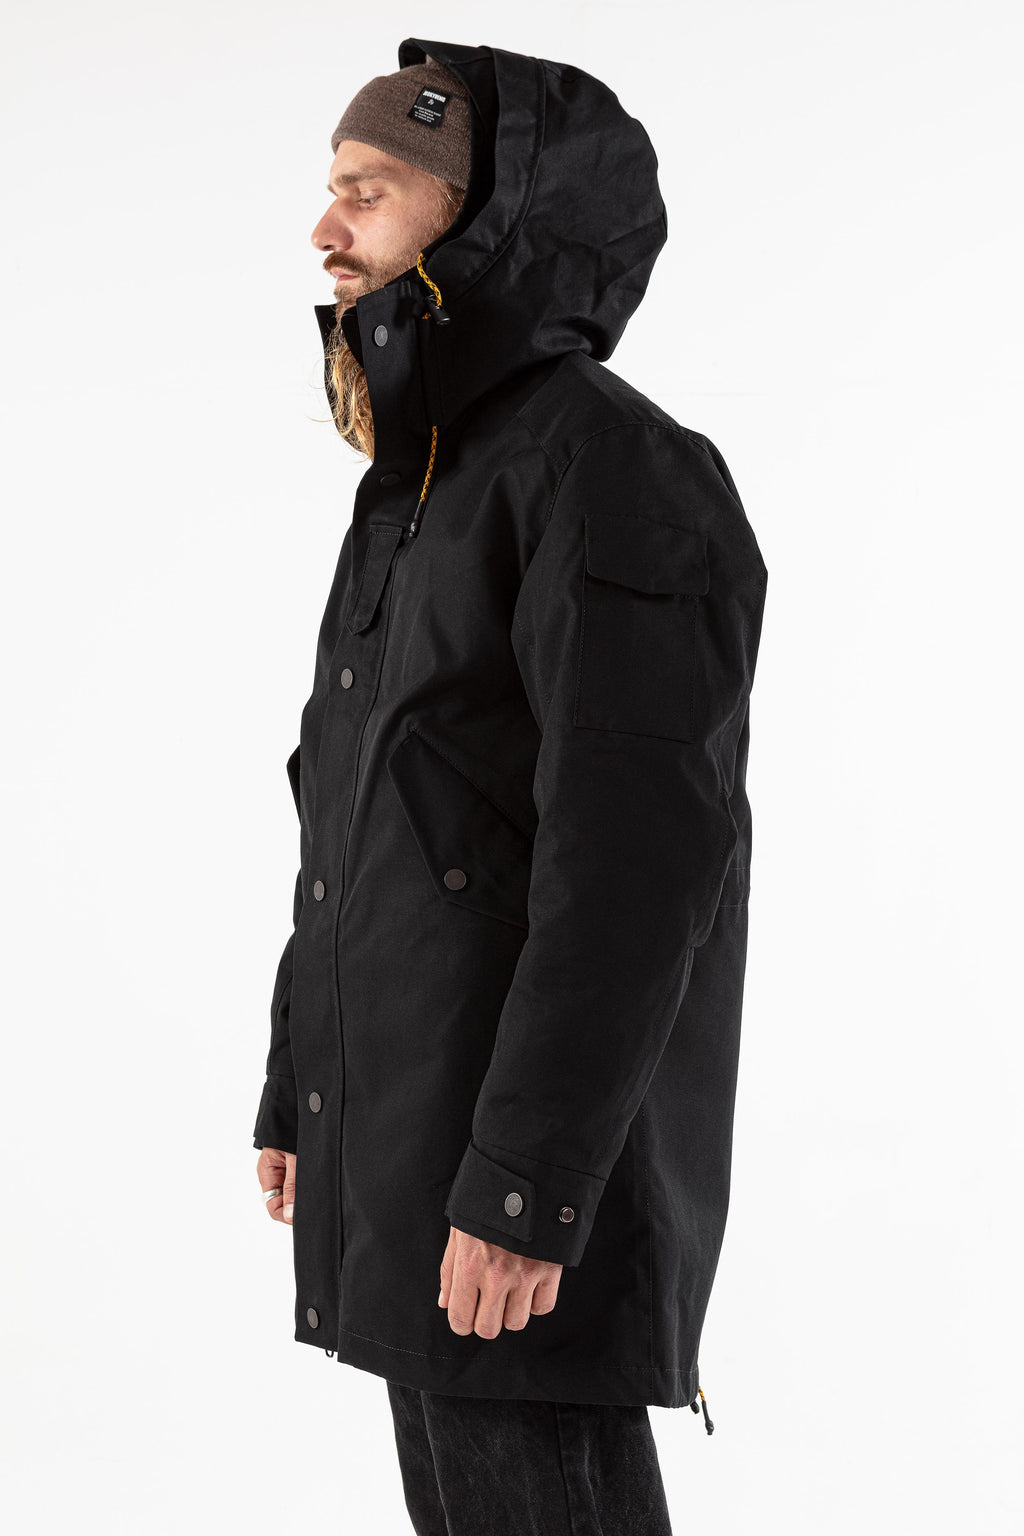 The JACKET deep black